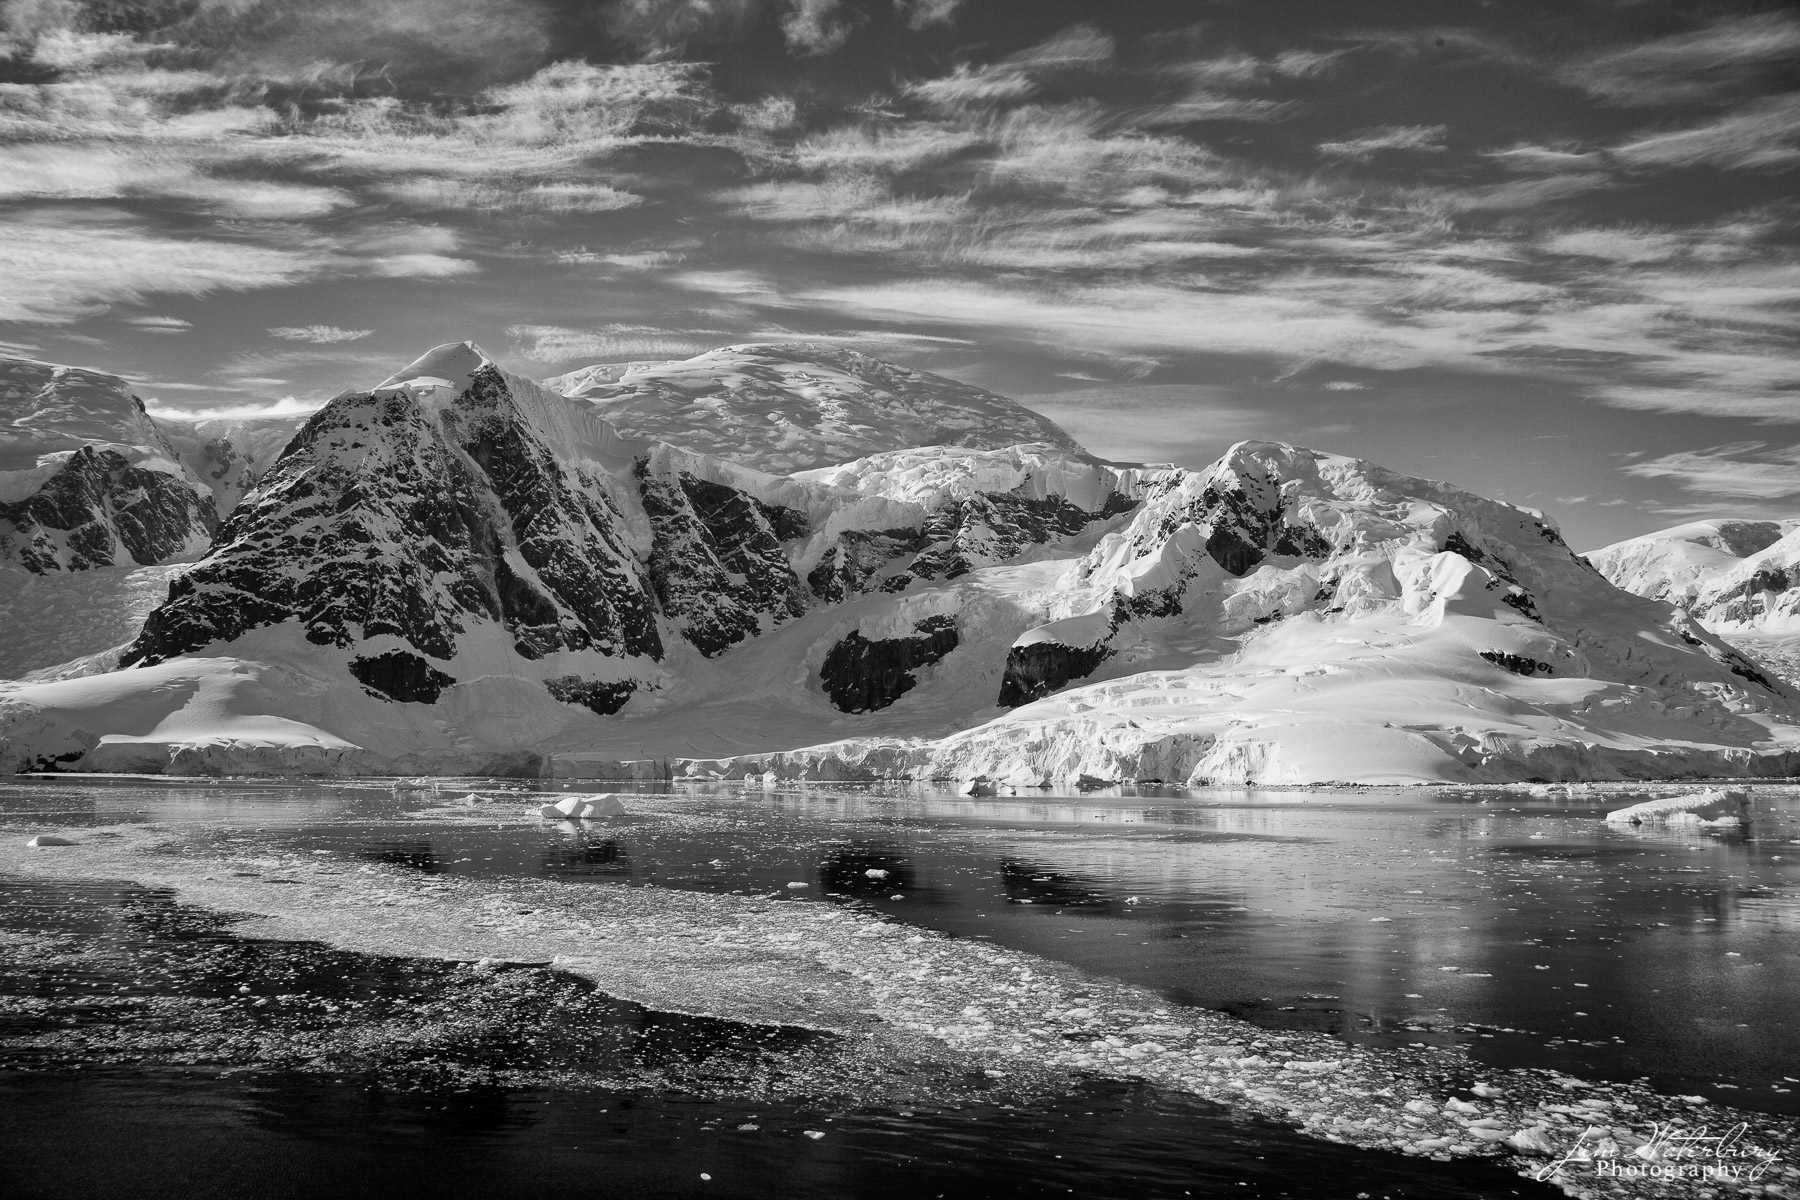 Antarctica, Paradise Harbour, mountains, wind-swept, B&W, photo